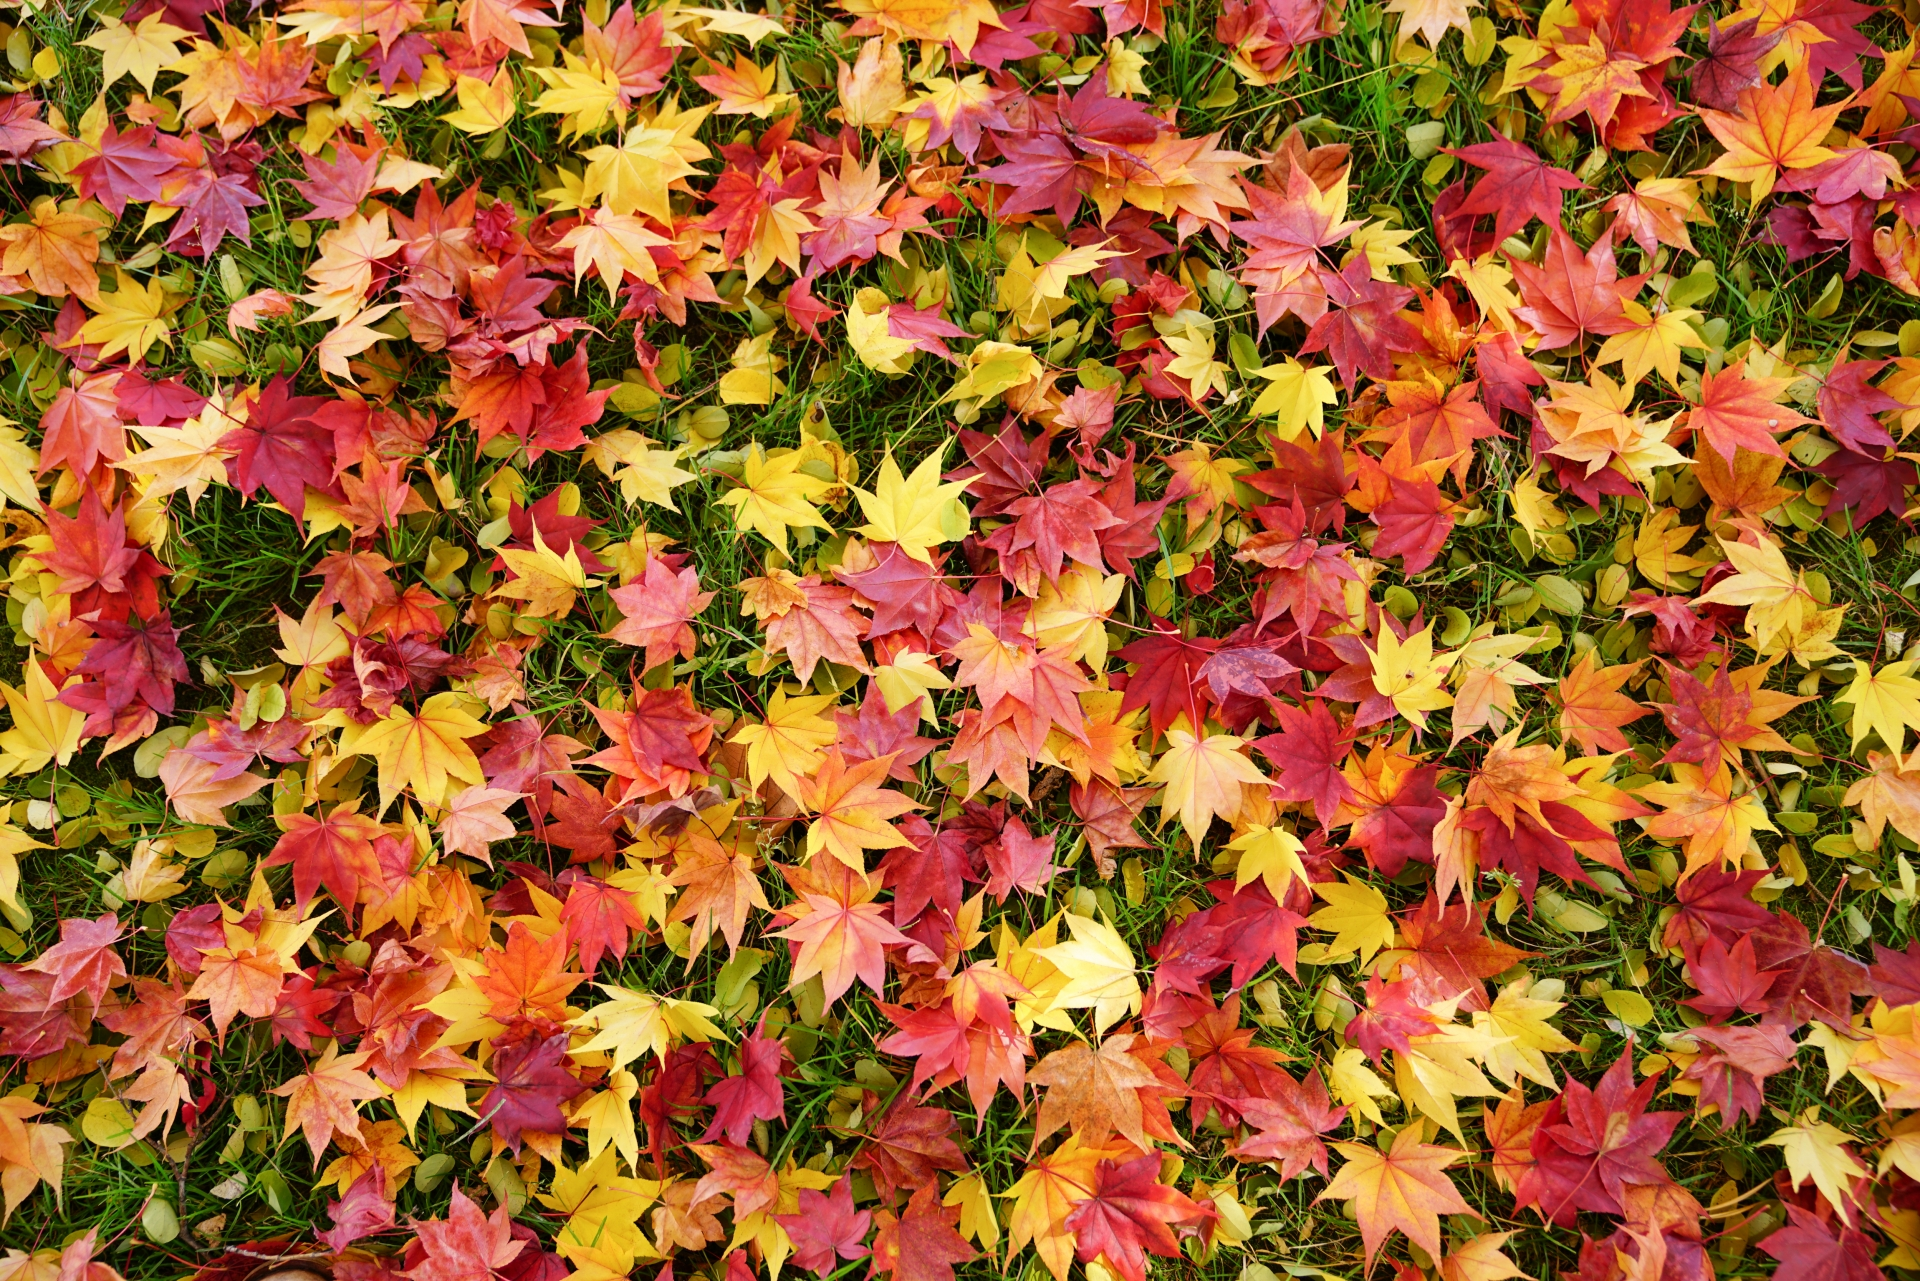 Autumn is coming… How to enjoy fall foliage in the heart of Tokyo